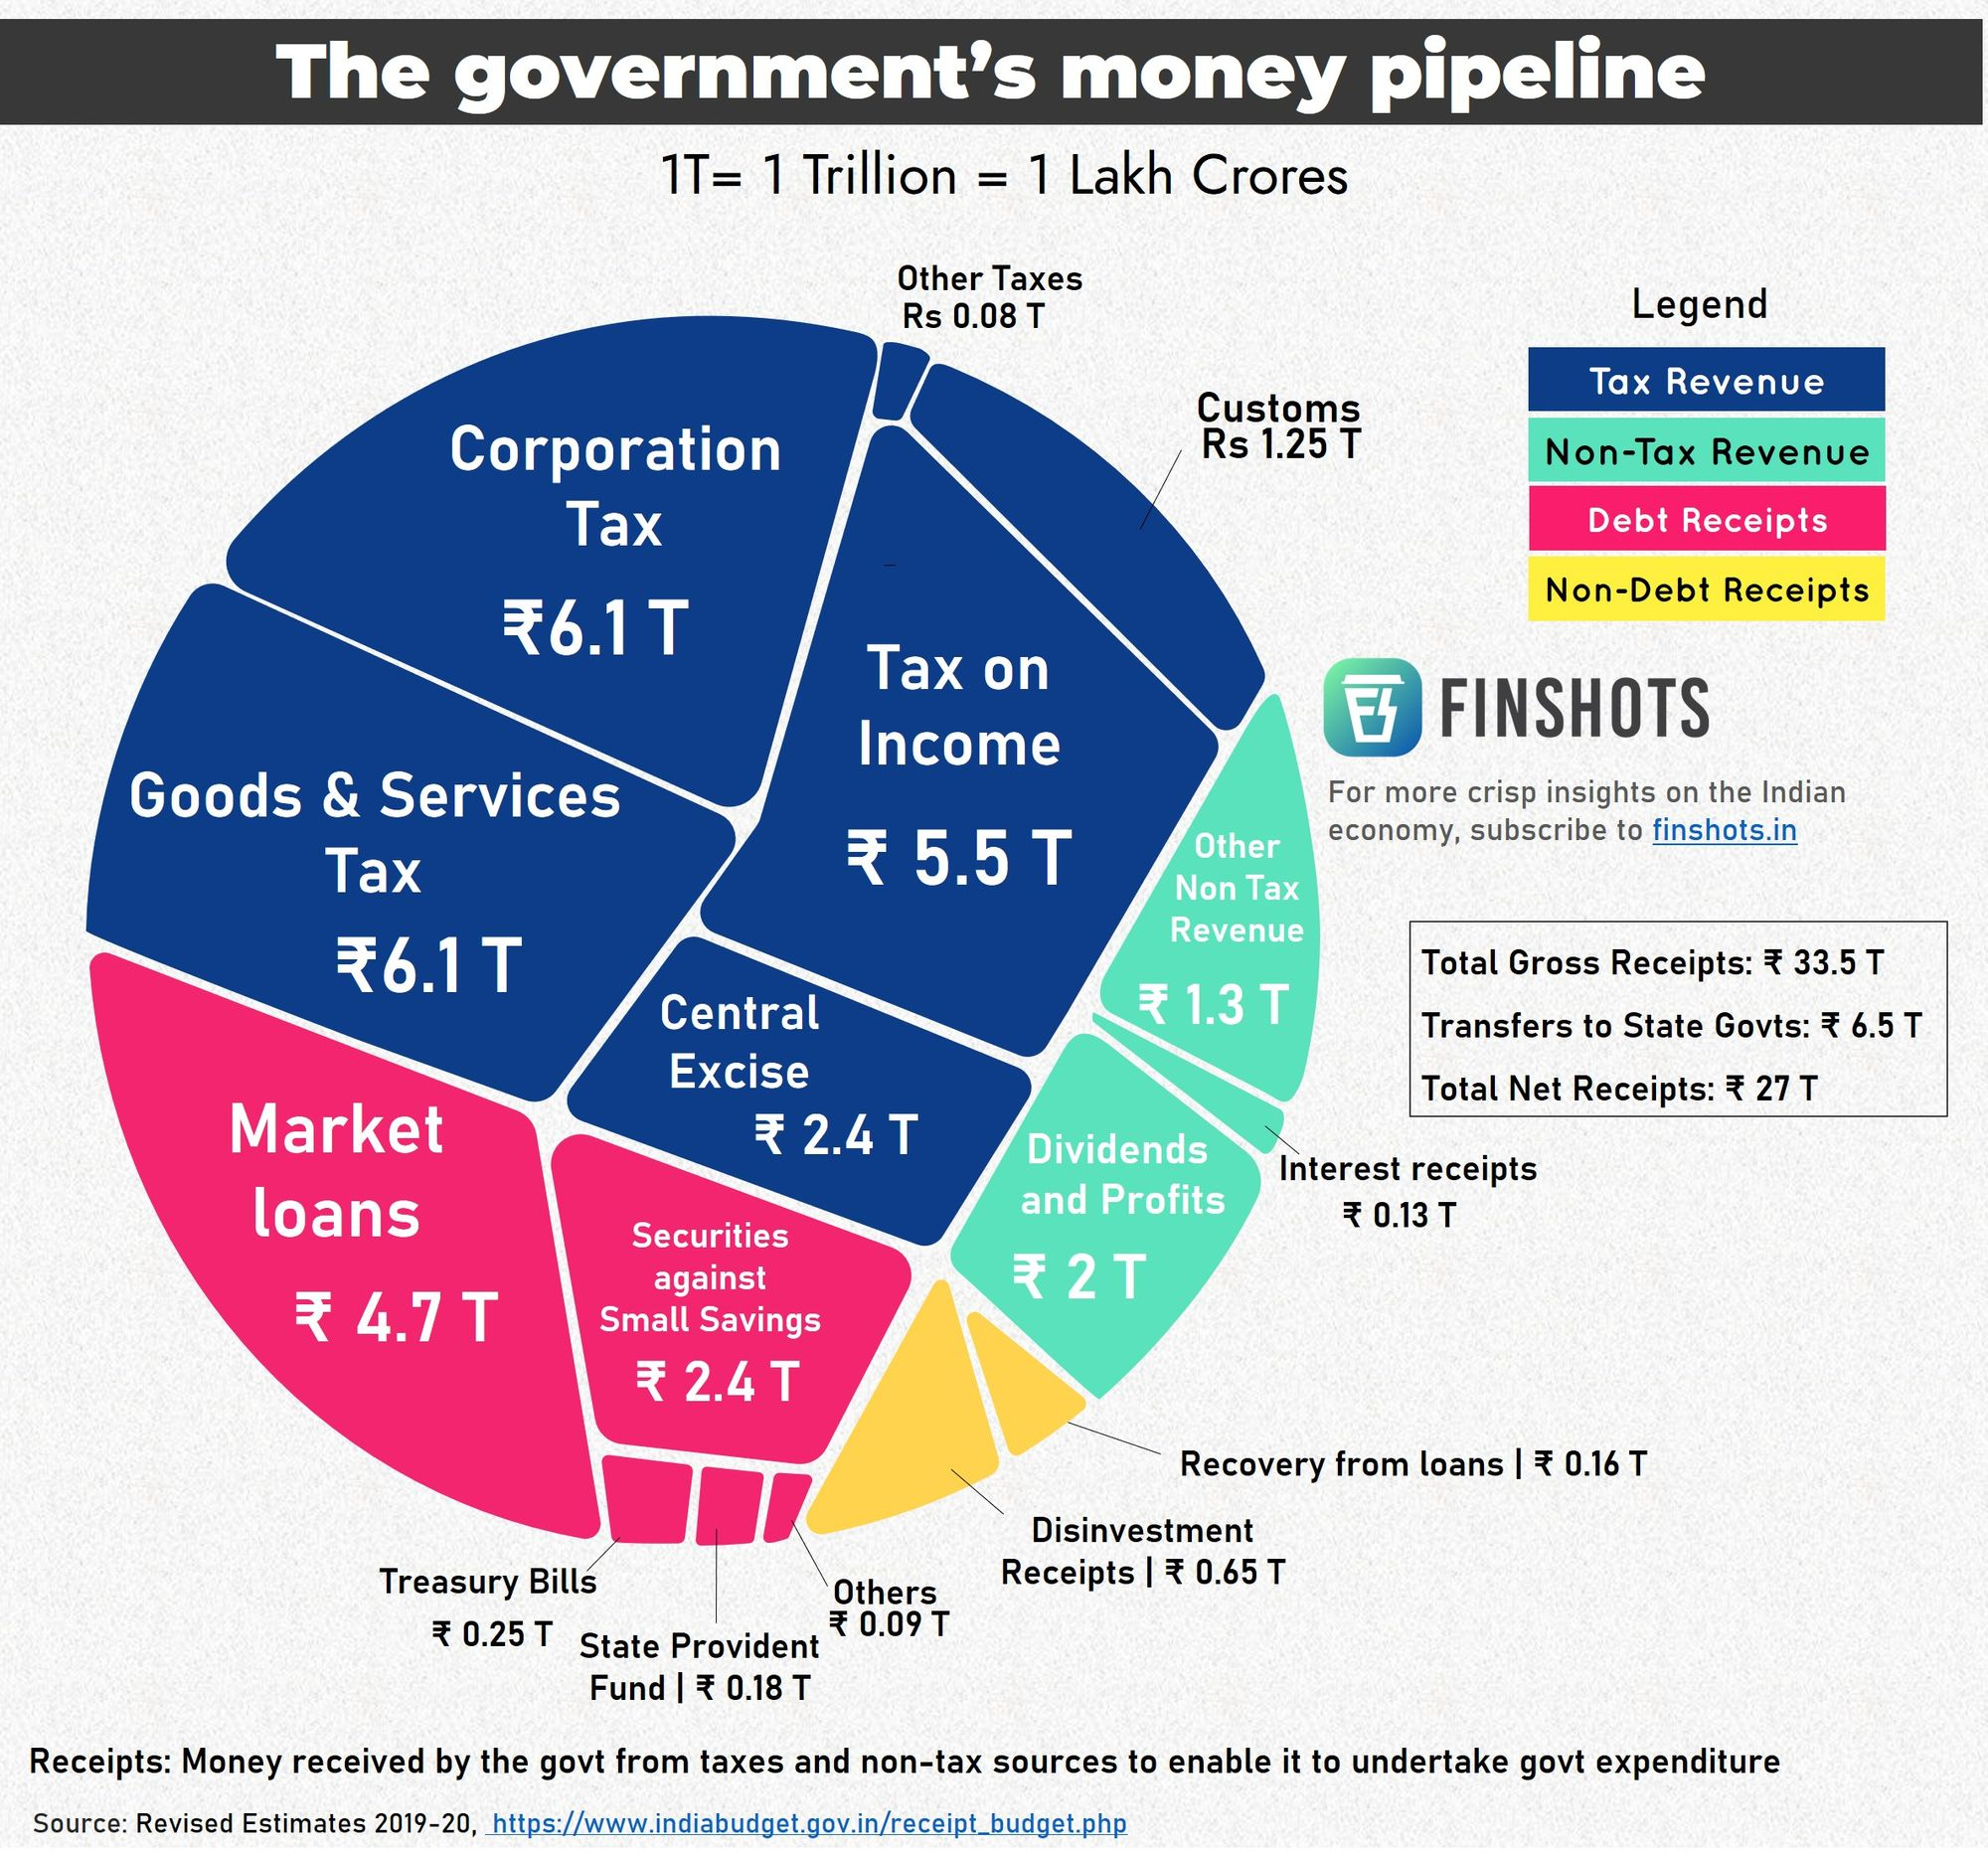 The Government's money pipeline